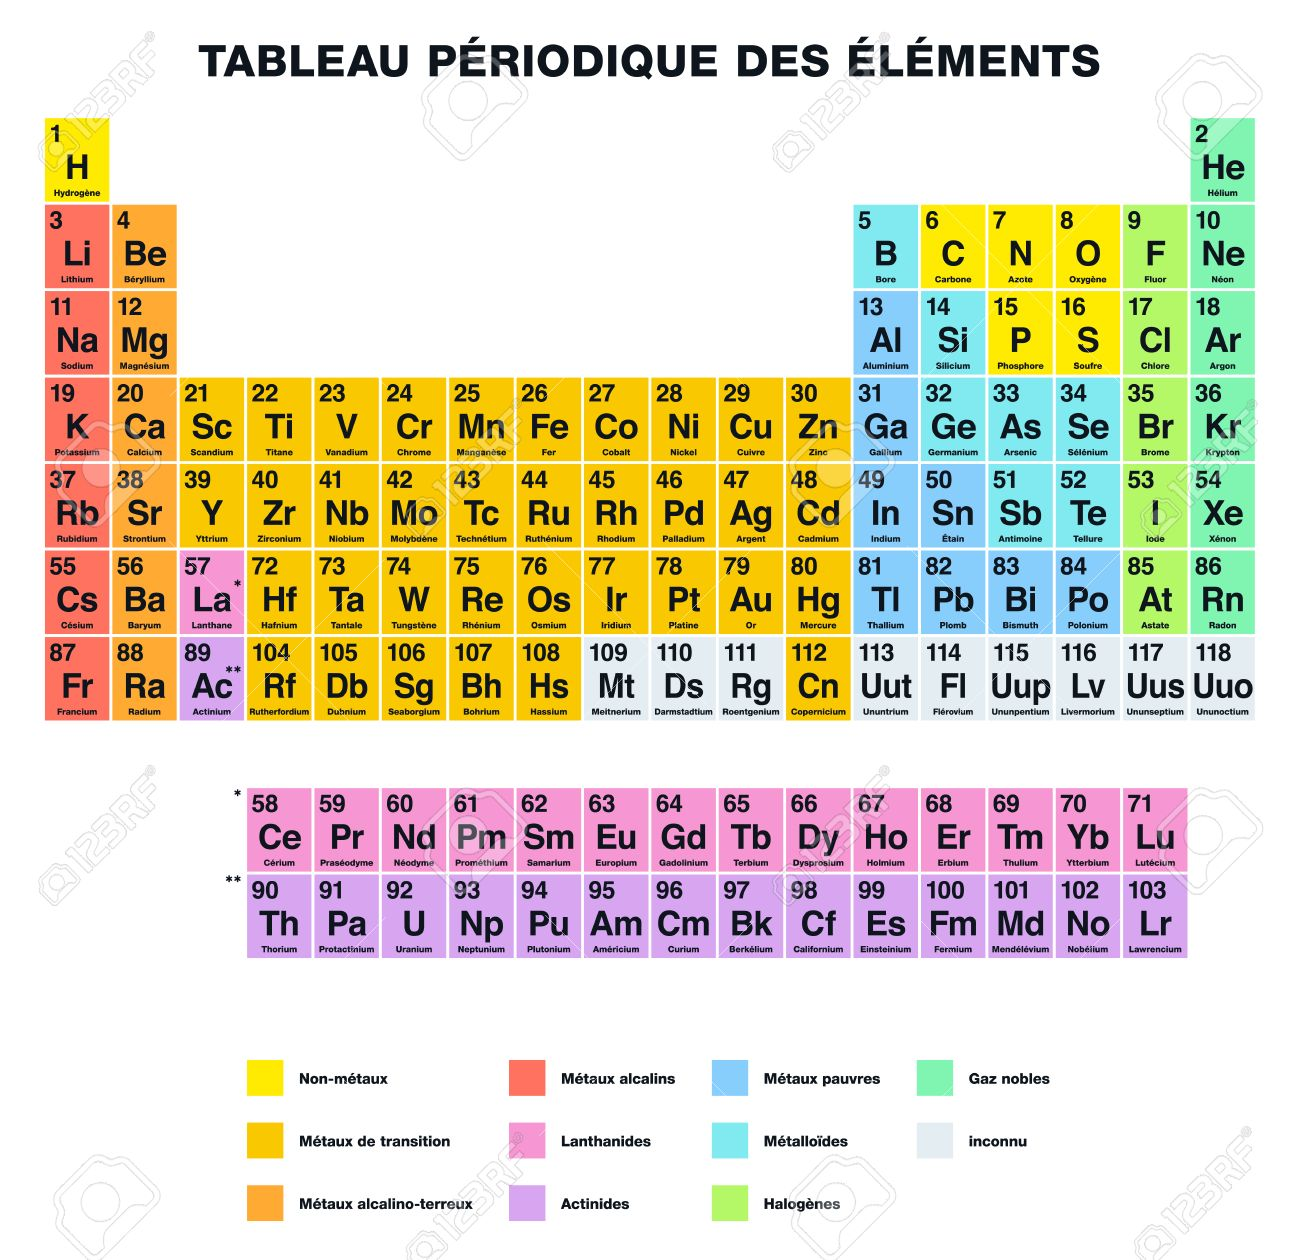 Element 75 periodic table gallery periodic table images rhenium symbol periodic table images periodic table images element 75 periodic table image collections periodic table gamestrikefo Choice Image